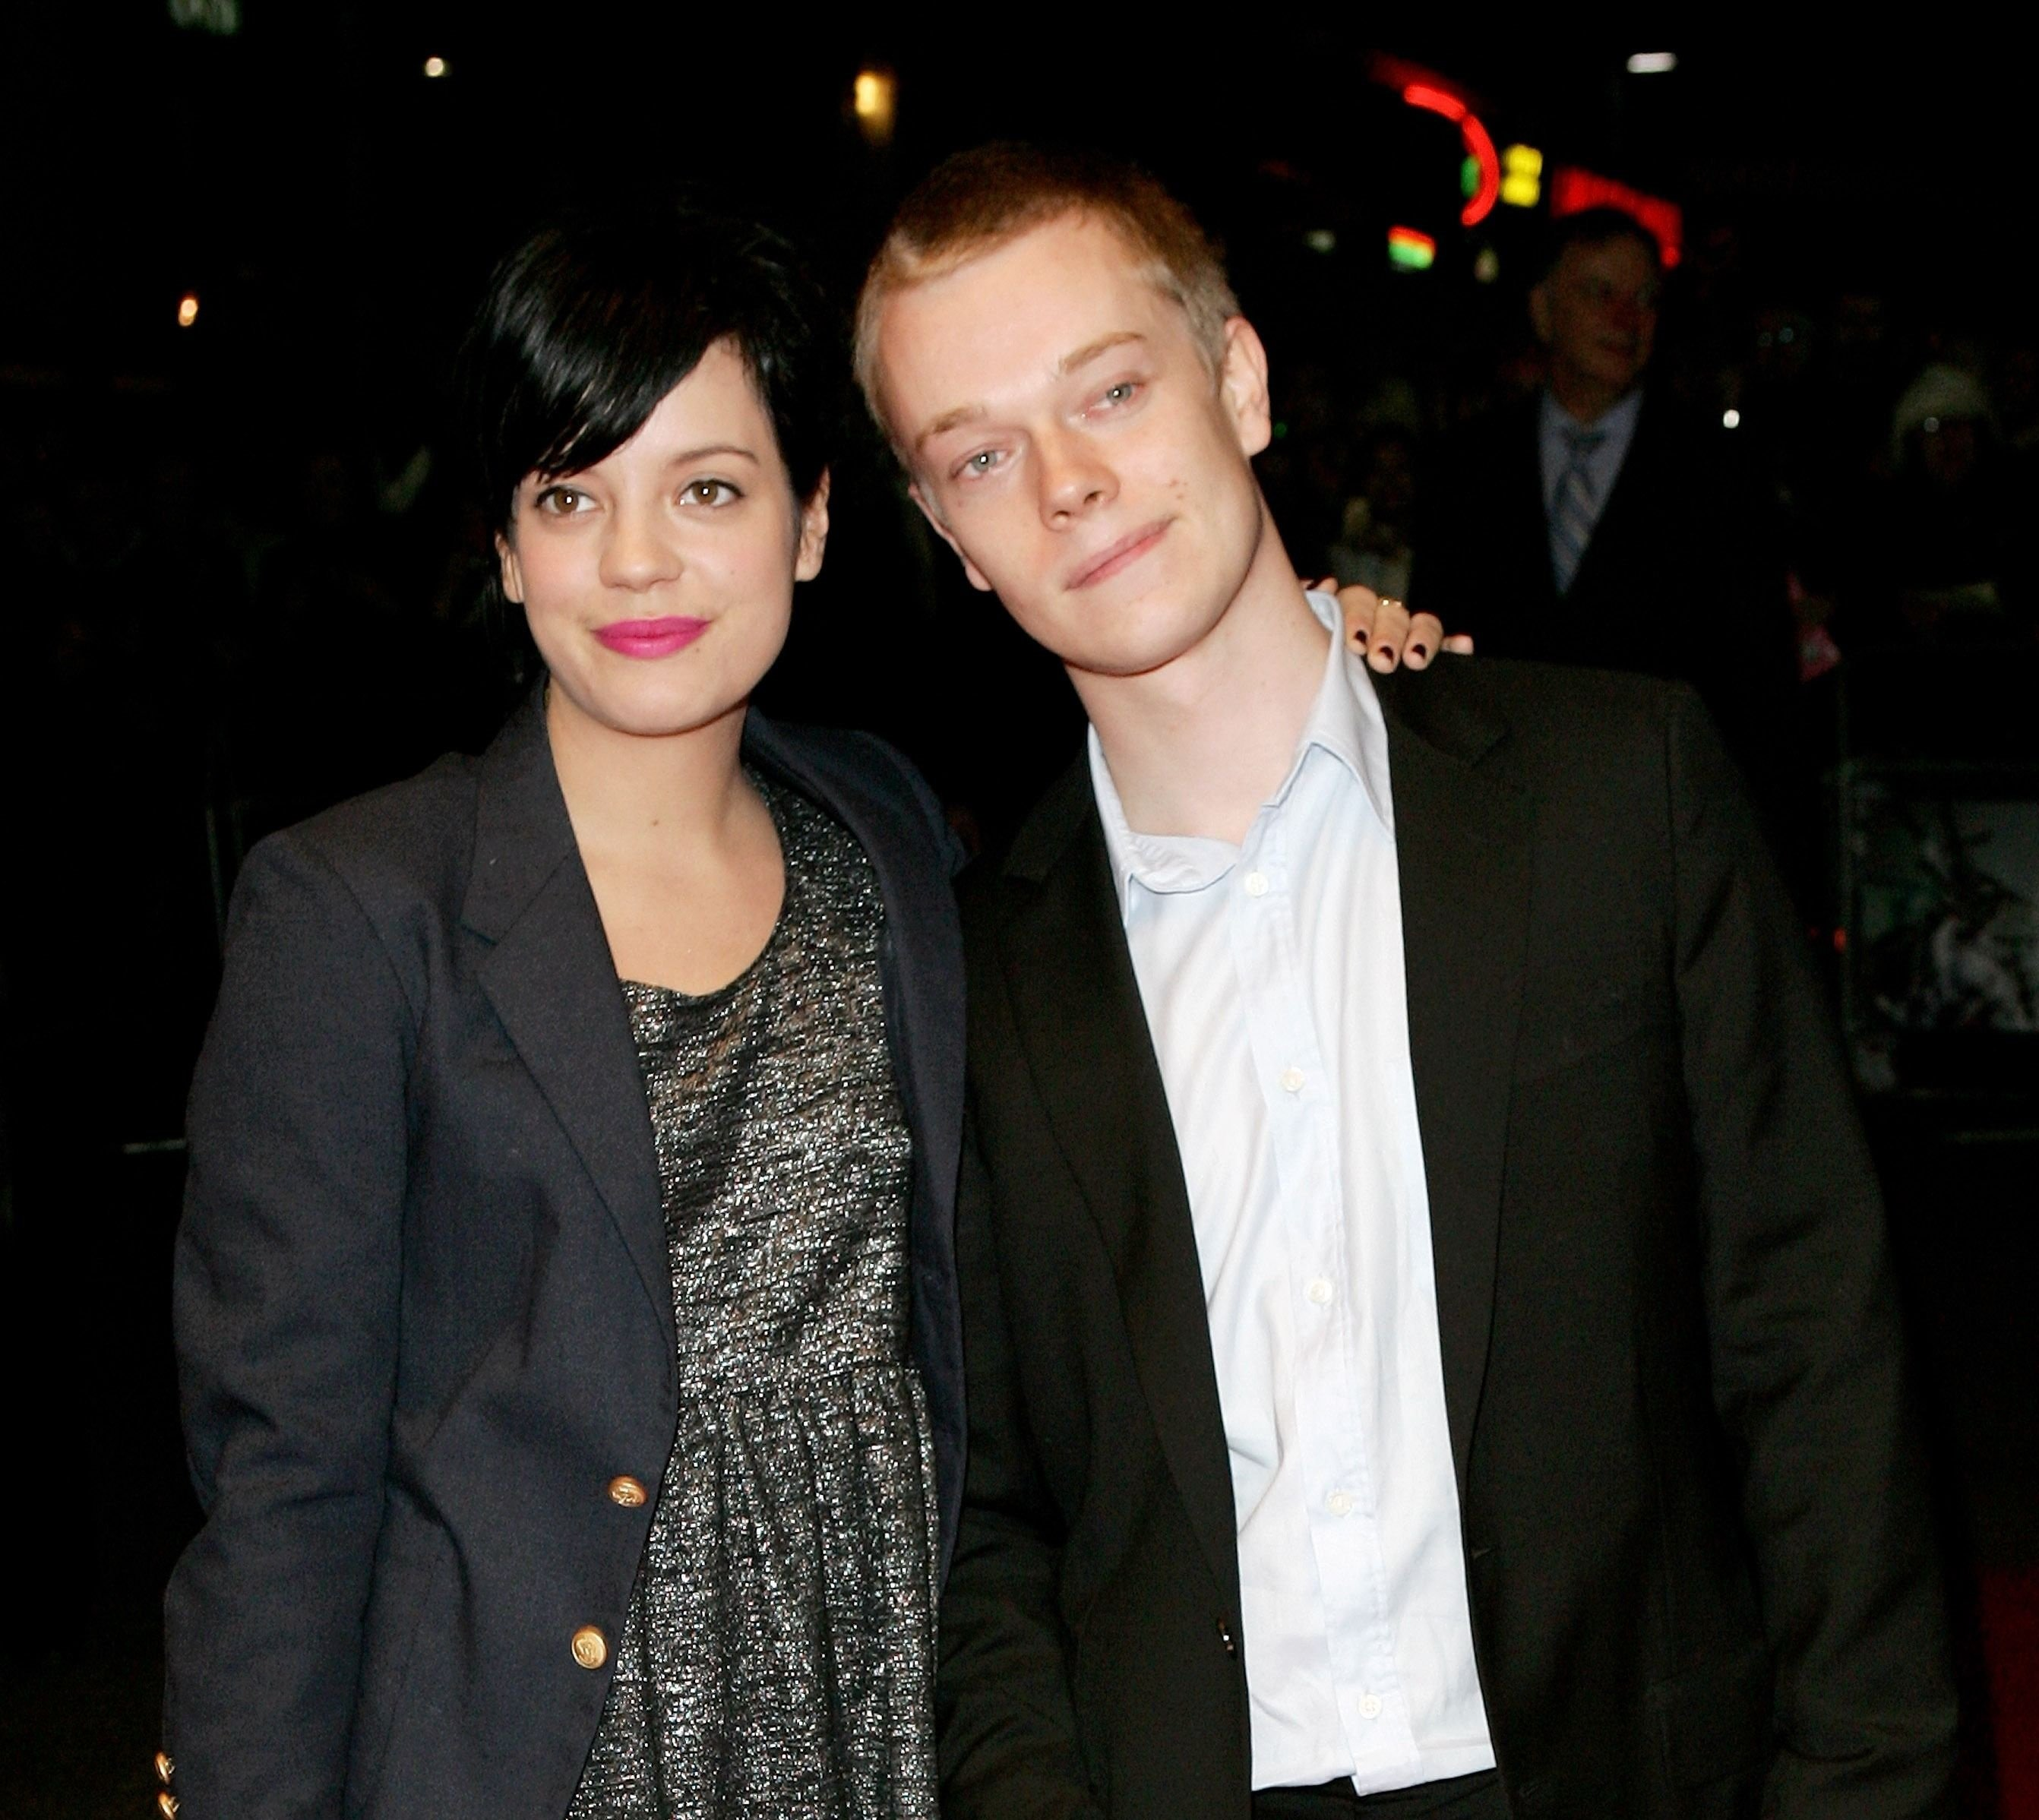 Musician Lily Allen and her brother Alfie Allen arrive at The Times BFI 51st London Film Festival / Getty Images